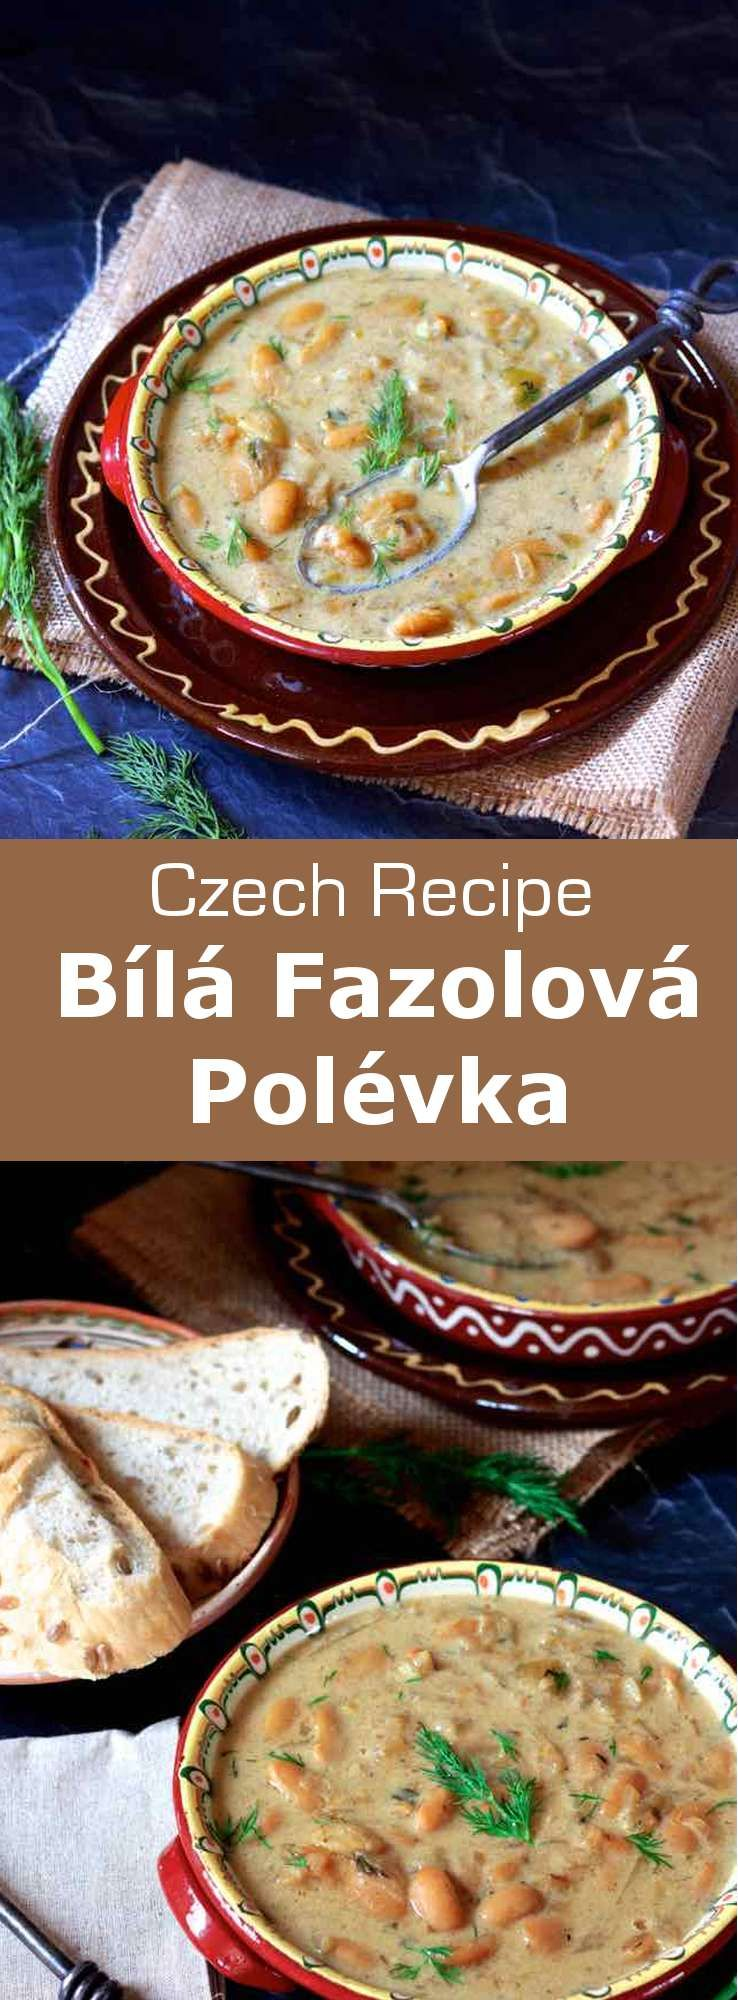 Frugal, filling, and deliciously hearty, this bílá fazolová polévka (white bean soup) is one of the culinary mainstays of the Czech Republic. #CzechRepublic #CzechCuisine #CzechRecipe #Soup #CzechSoup #Vegetarian #VegetarianSoup #WorldCuisine #196flavors #czechrecipes